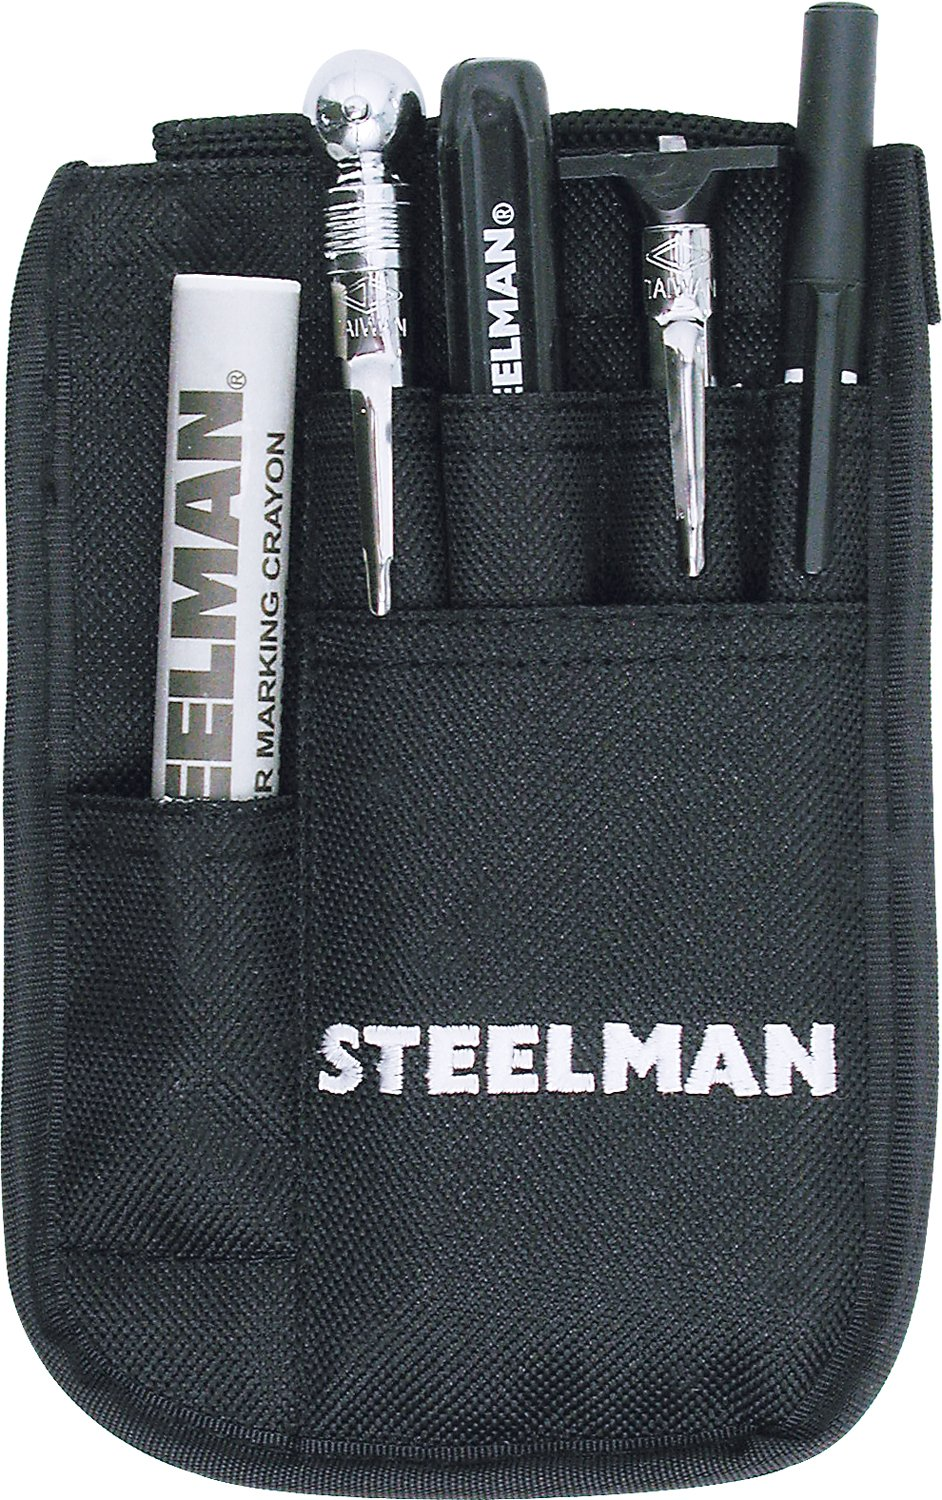 Steelman 301680 Tire Tool Kit